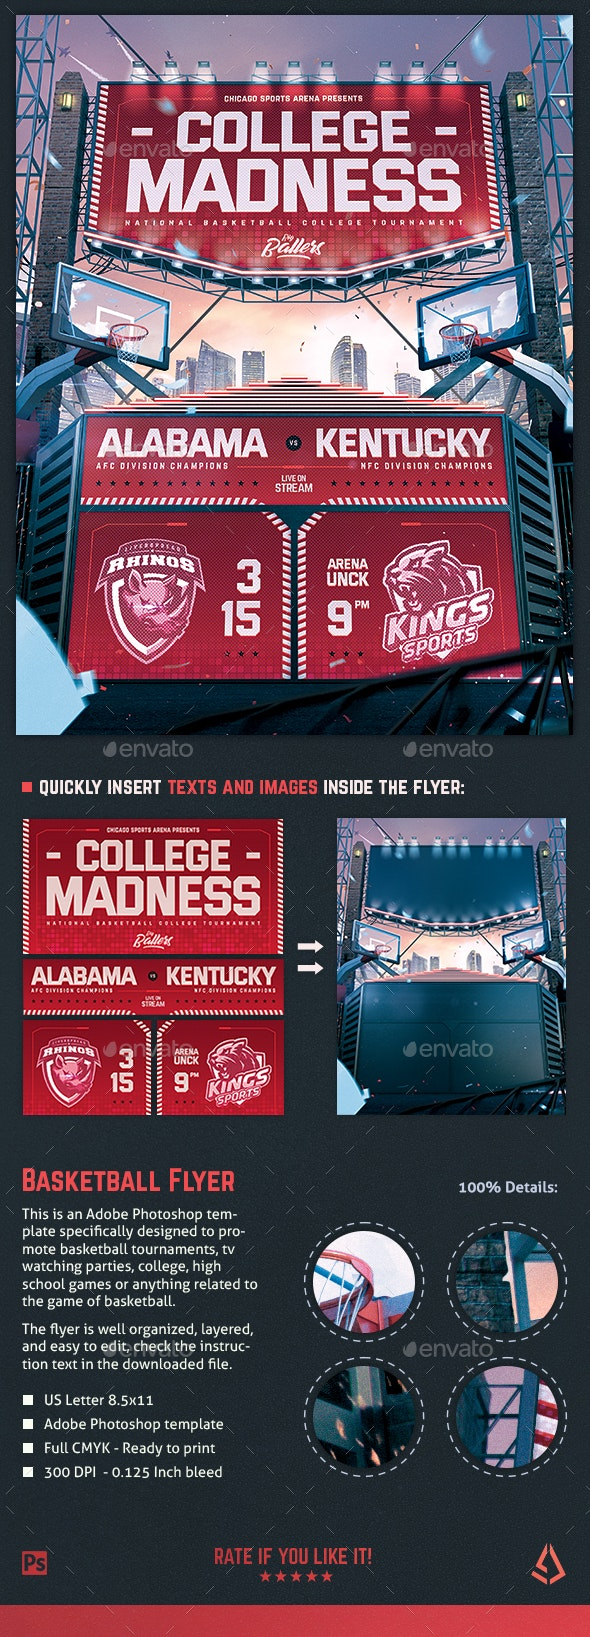 Basketball Madness Flyer College Hoops Template - Sports Events